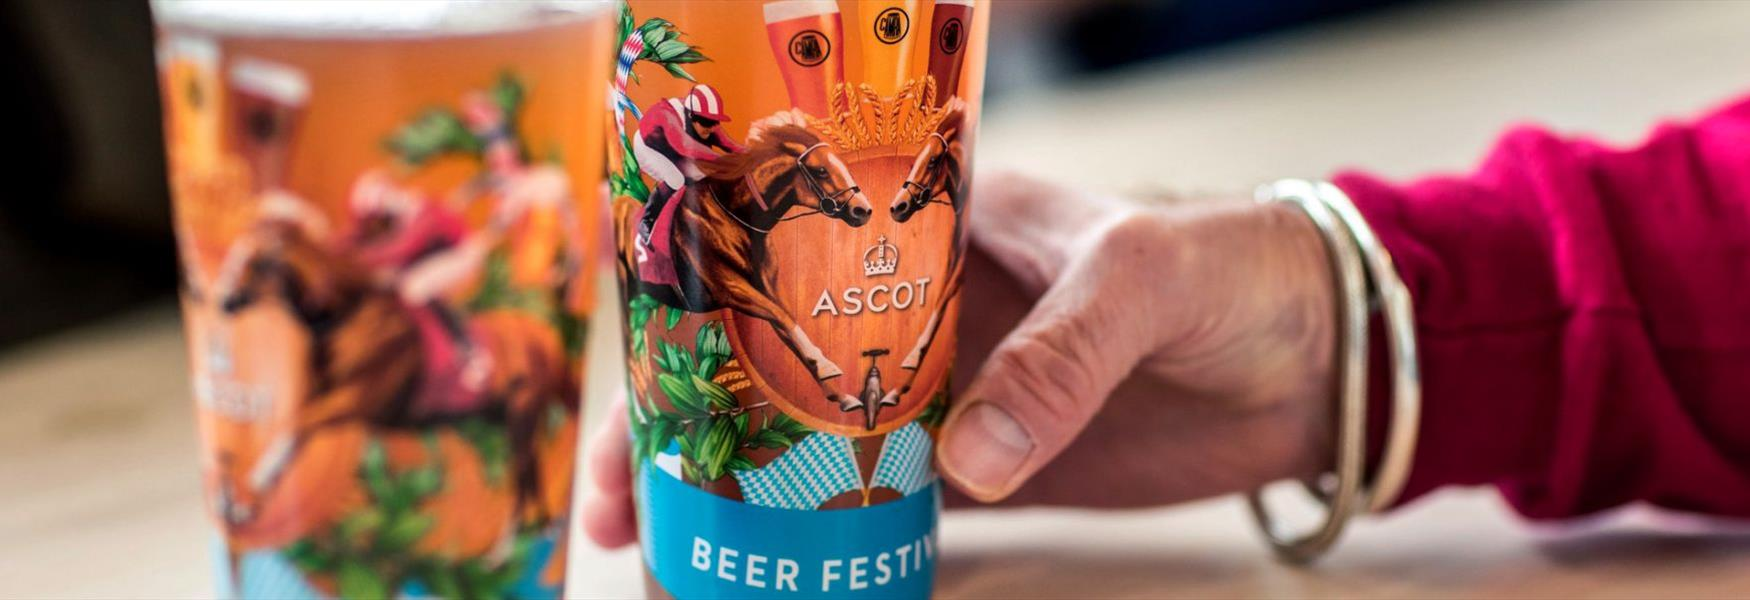 Ascot Beer Festival at the Autumn Racing Weekend